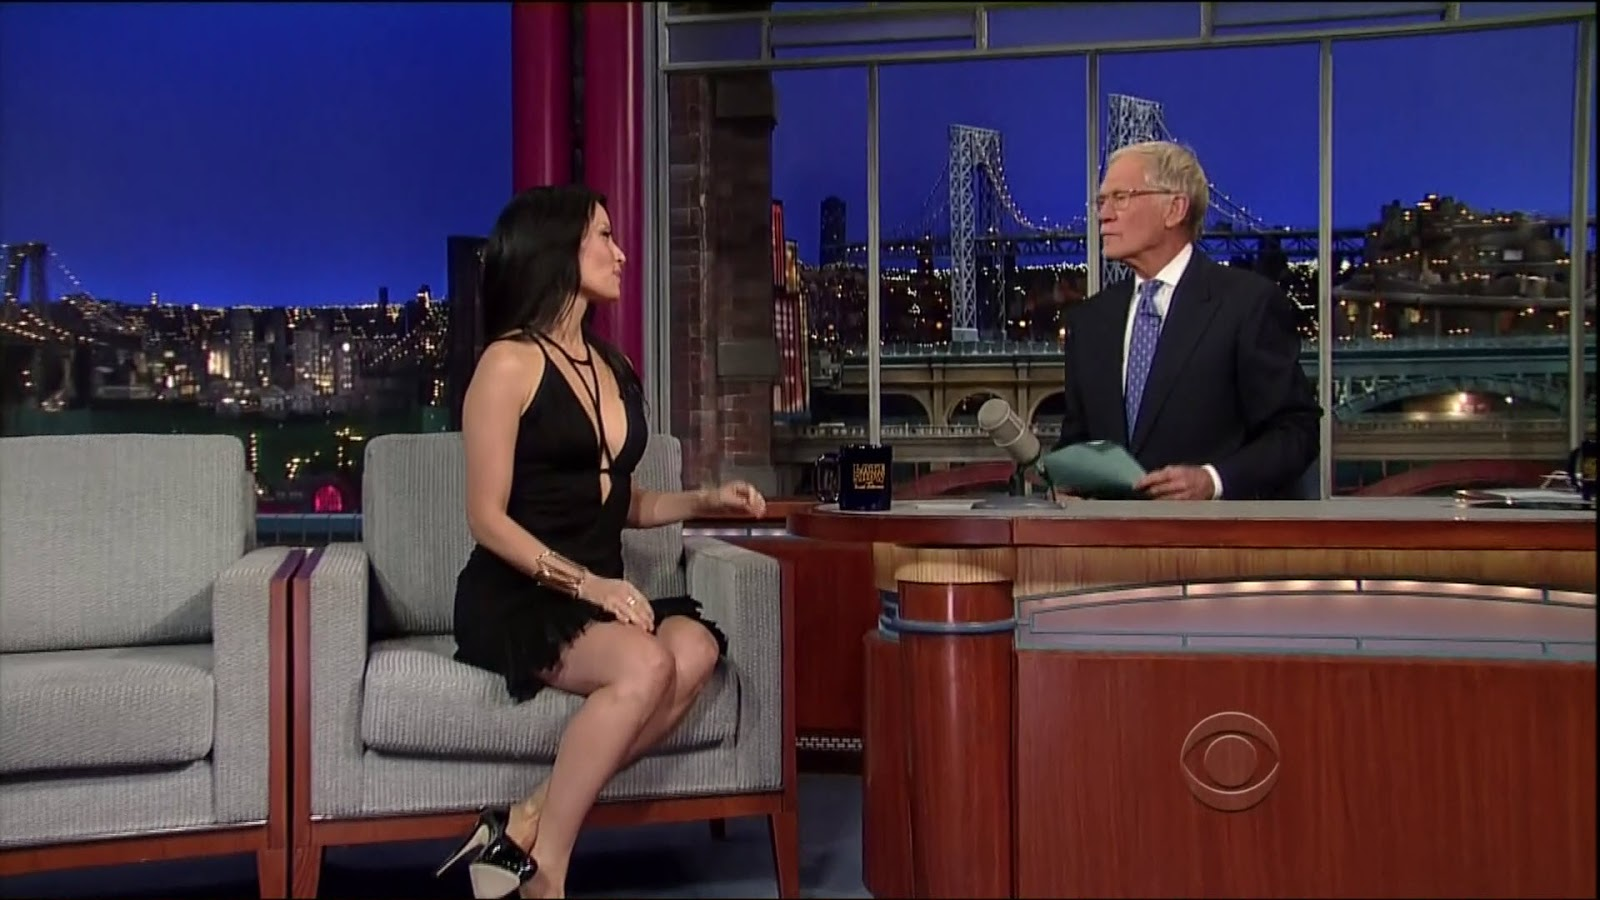 Lucy Liu Crazy Revealing Dress For Letterman